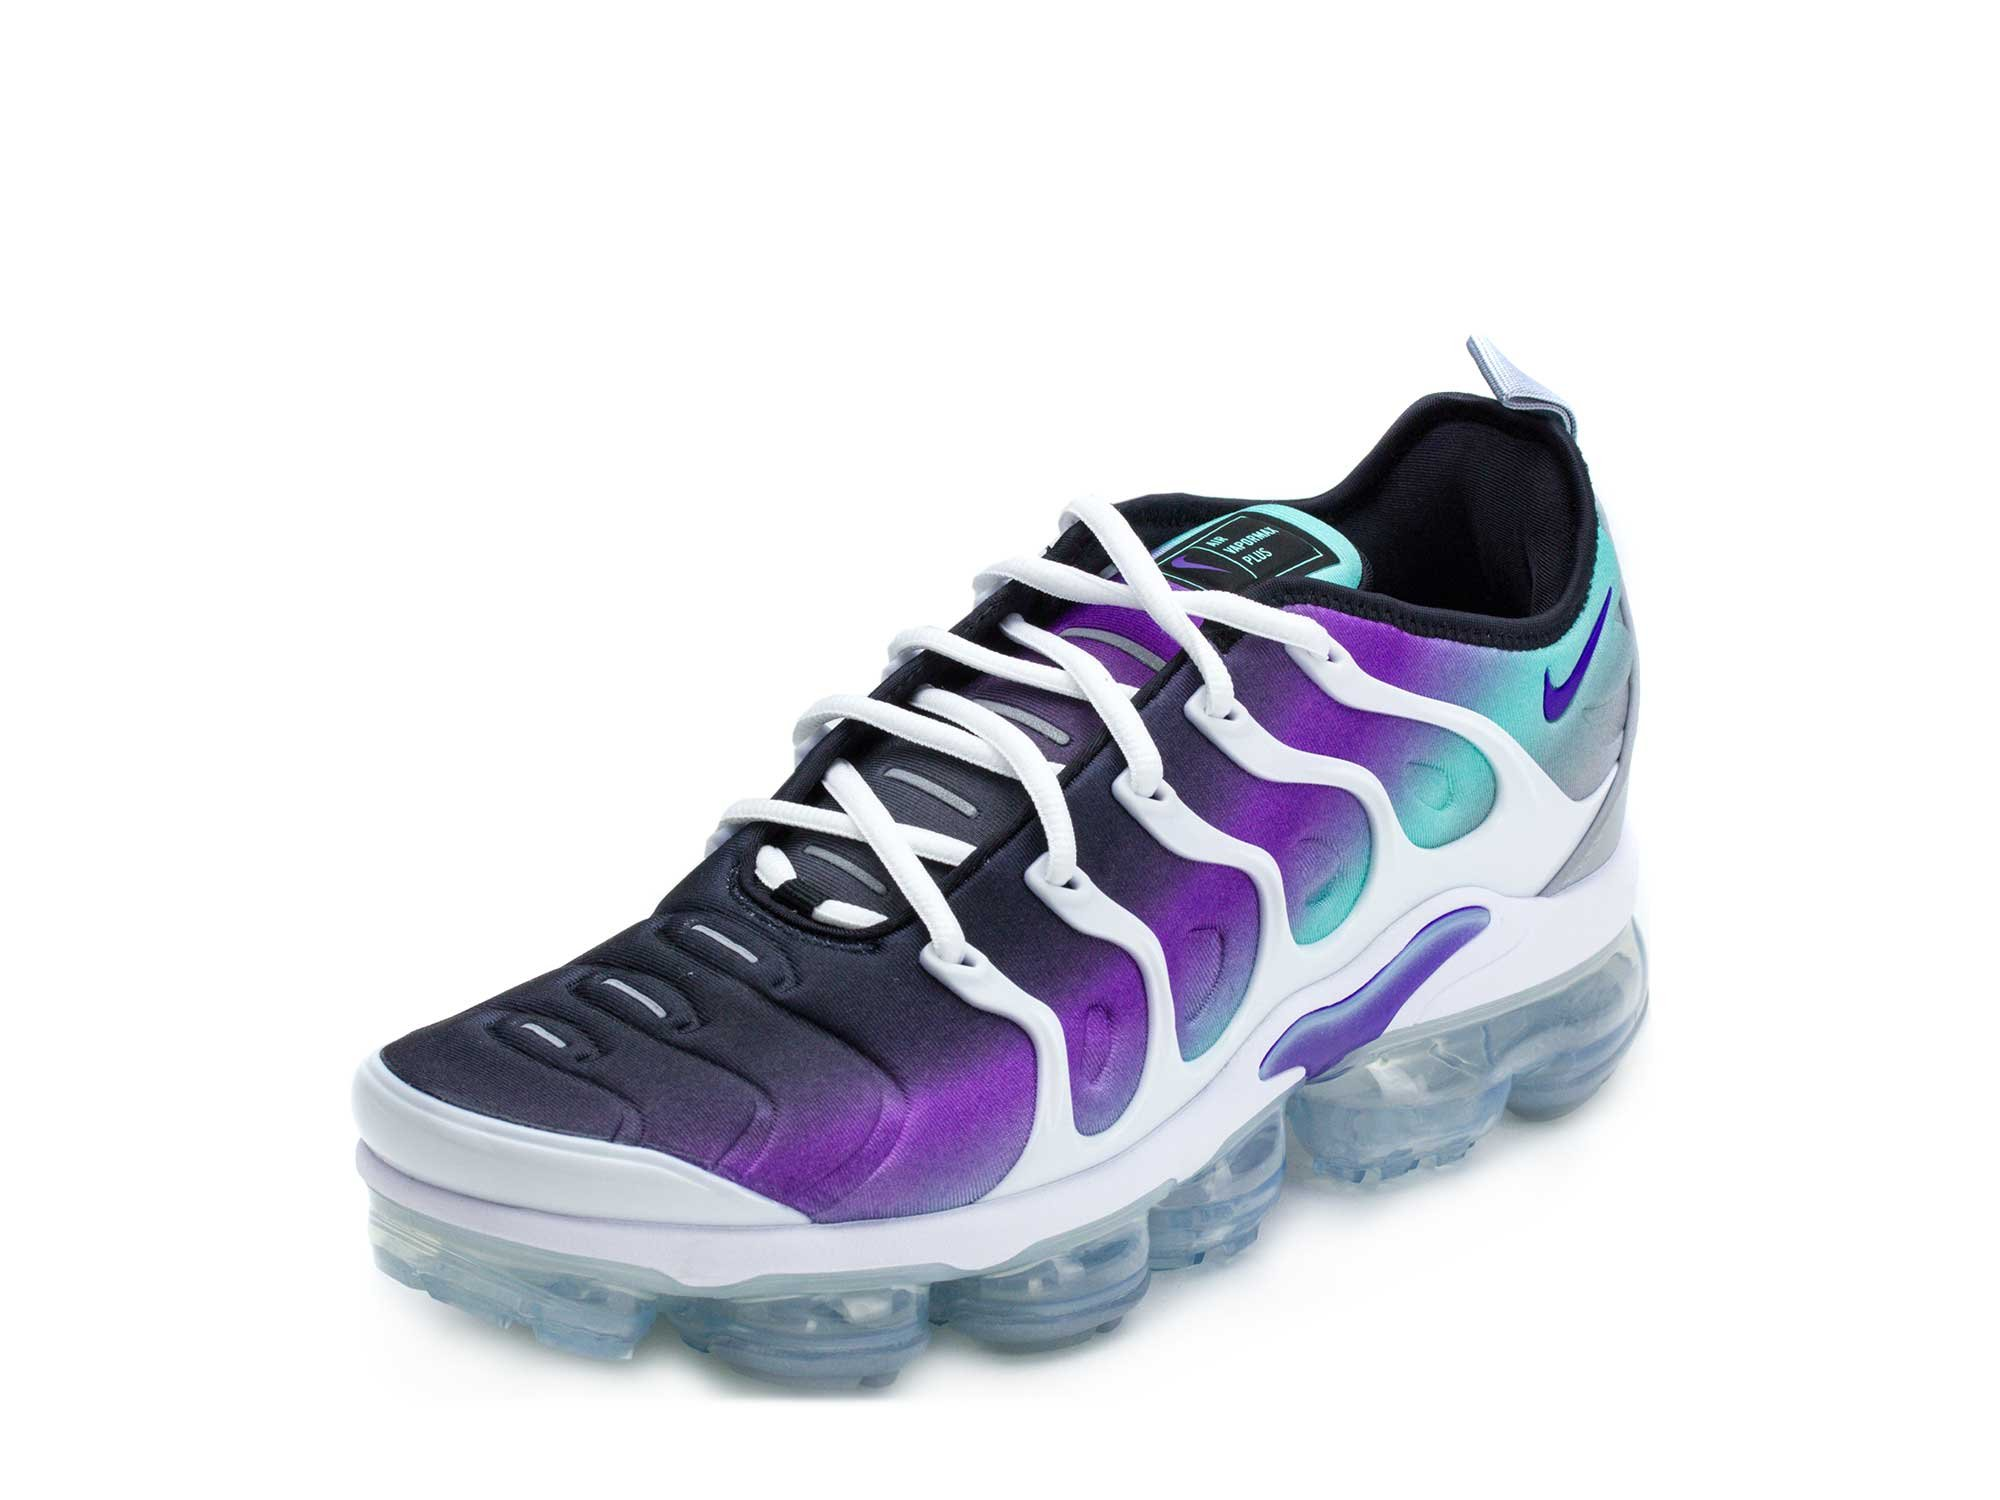 low priced 0e8c7 947f4 Nike Mens Air Vapormax Plus White/Purple Neoprene Size 11.5